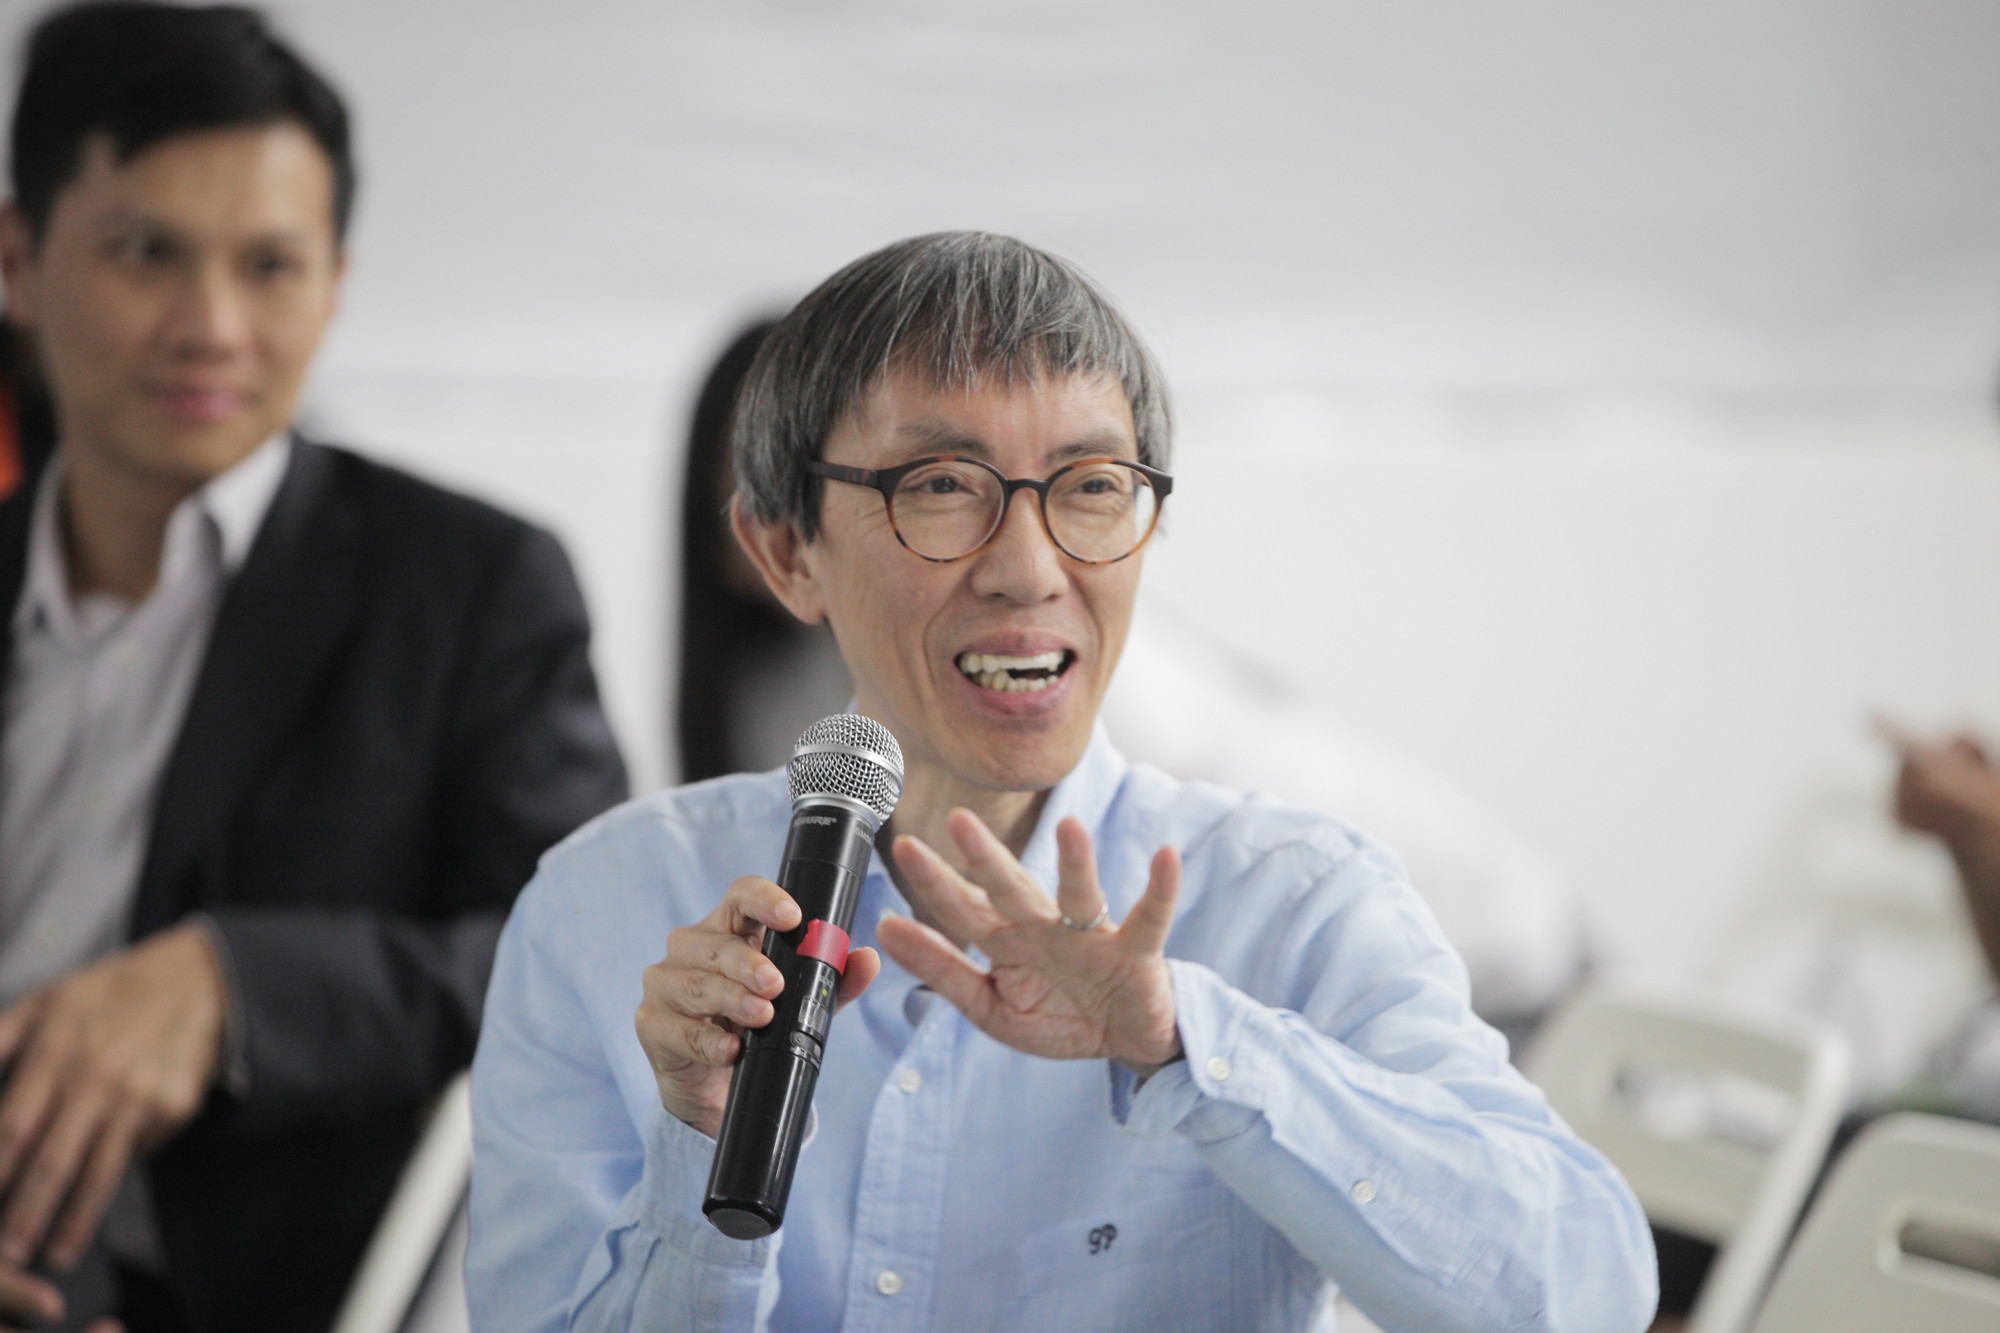 Rocco Yim Reveals the Key to Developing Cities for Low-Carbon Living, Rocco Yim speaks at the Alternatives for Low Carbon City Architecture and Life Forum. Image Courtesy of Shenzhen Design Center